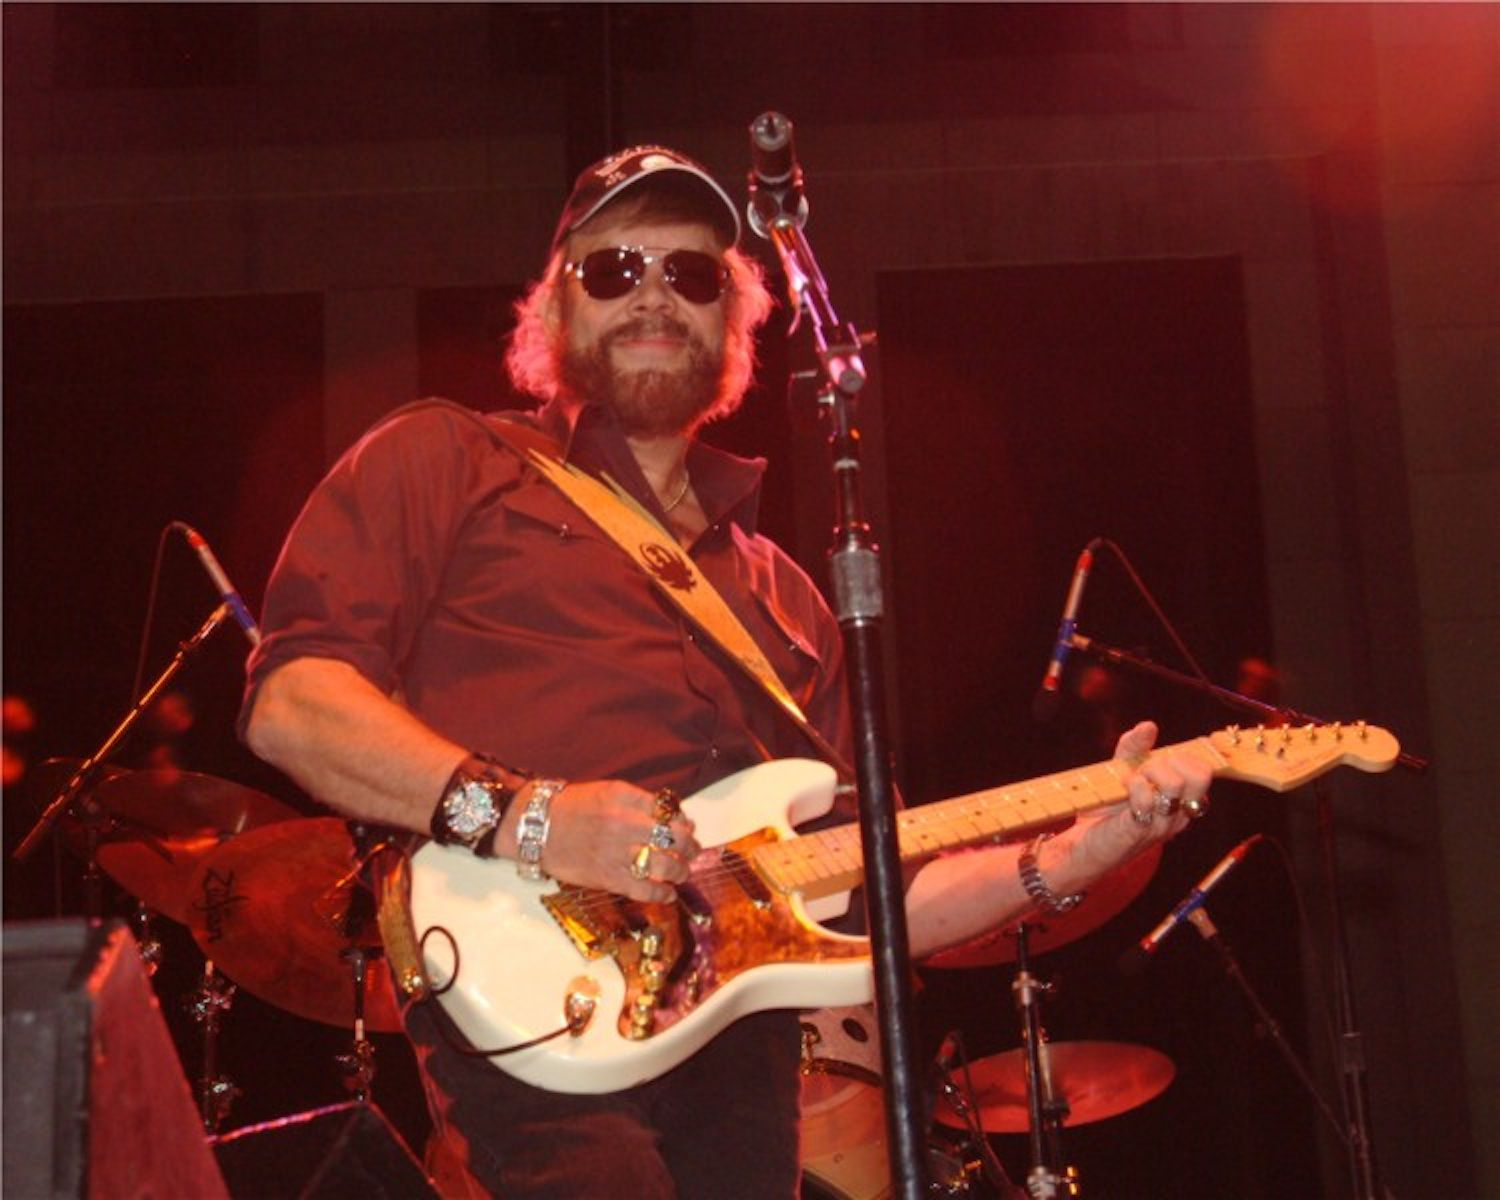 a biography of superstar hank williams jr Essay hank williams jr jerry erath essay 4 december 12, 1996 hank williams, jr was meant to be a superstar from the day he was born his father, the legendary hank williams, and mother, audrey sheppard, both played an intricate part in his early stardom.